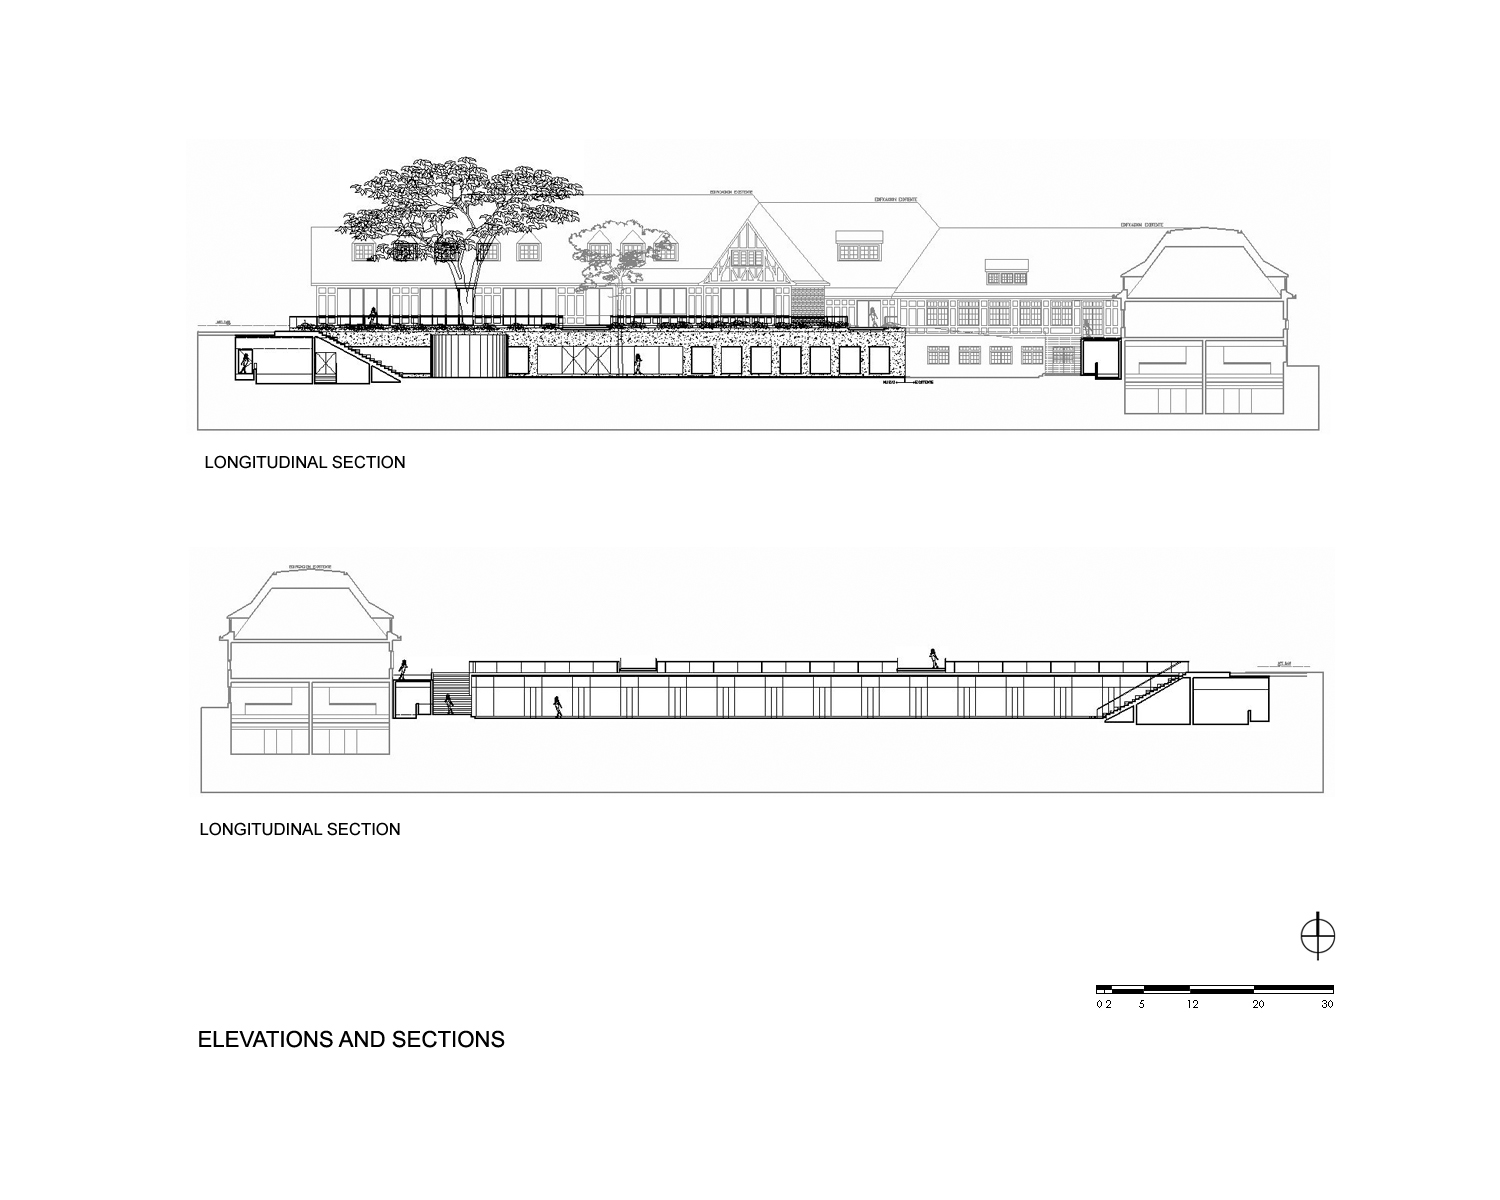 Ping Mall Plan Elevation Section : Student centered resources colonial and history on pinterest